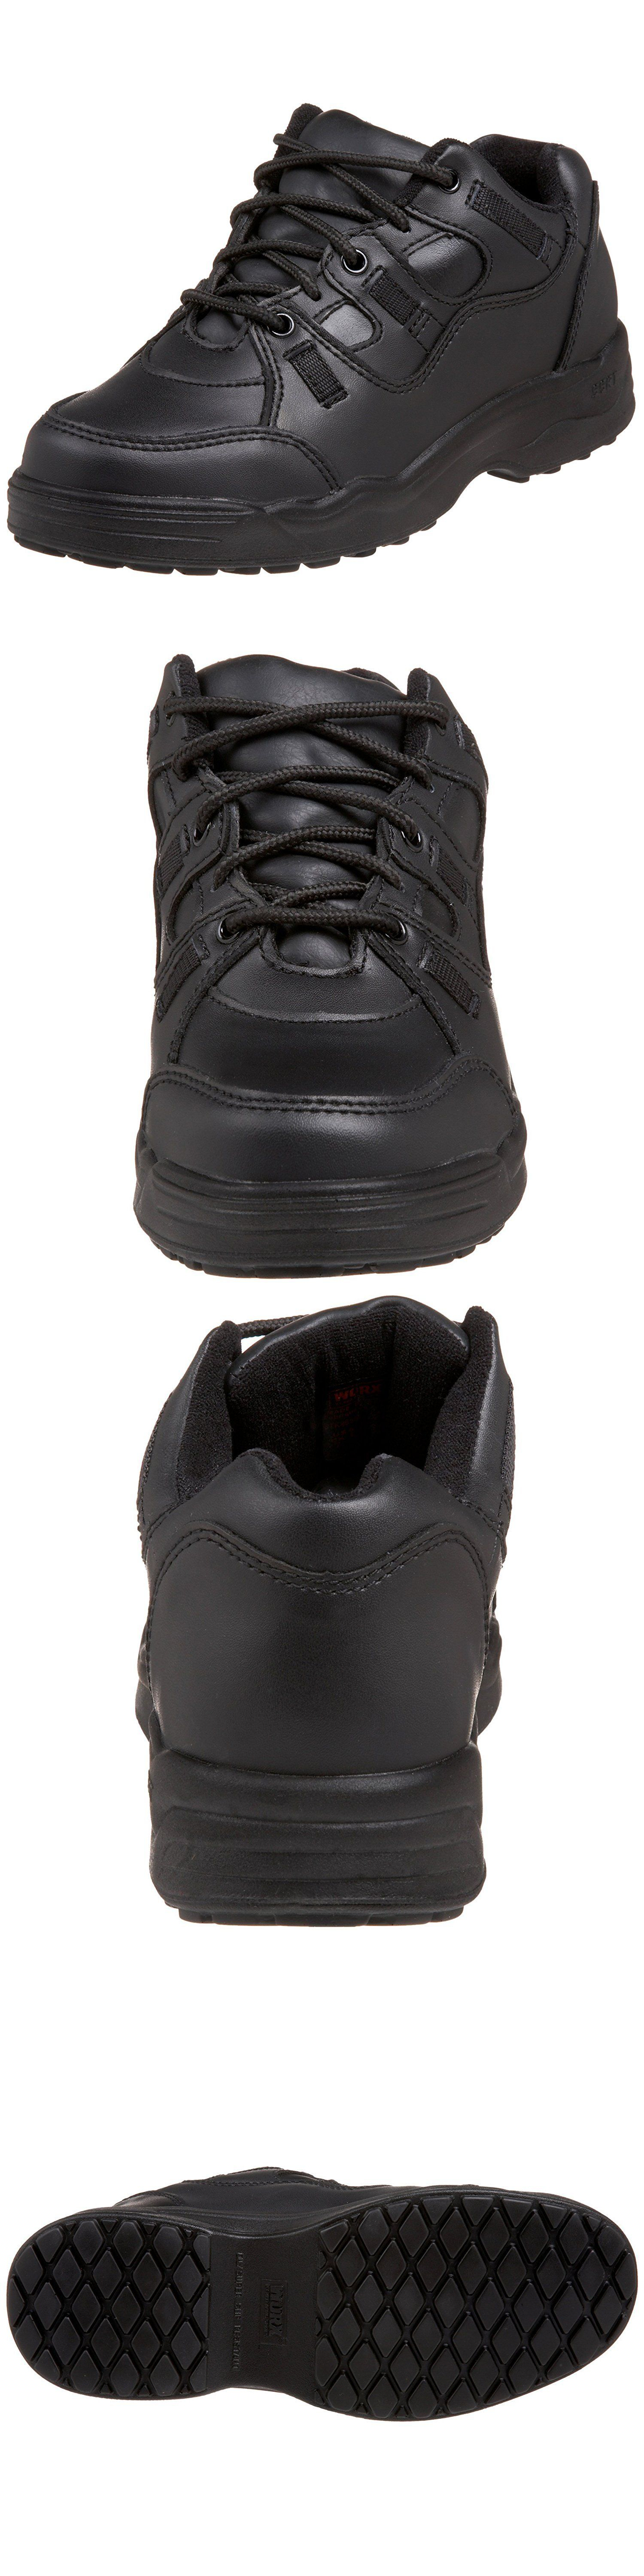 loafers resistant alpine slip leather swiss arbete most work real on comforter blk shoes by itm comfortable mens